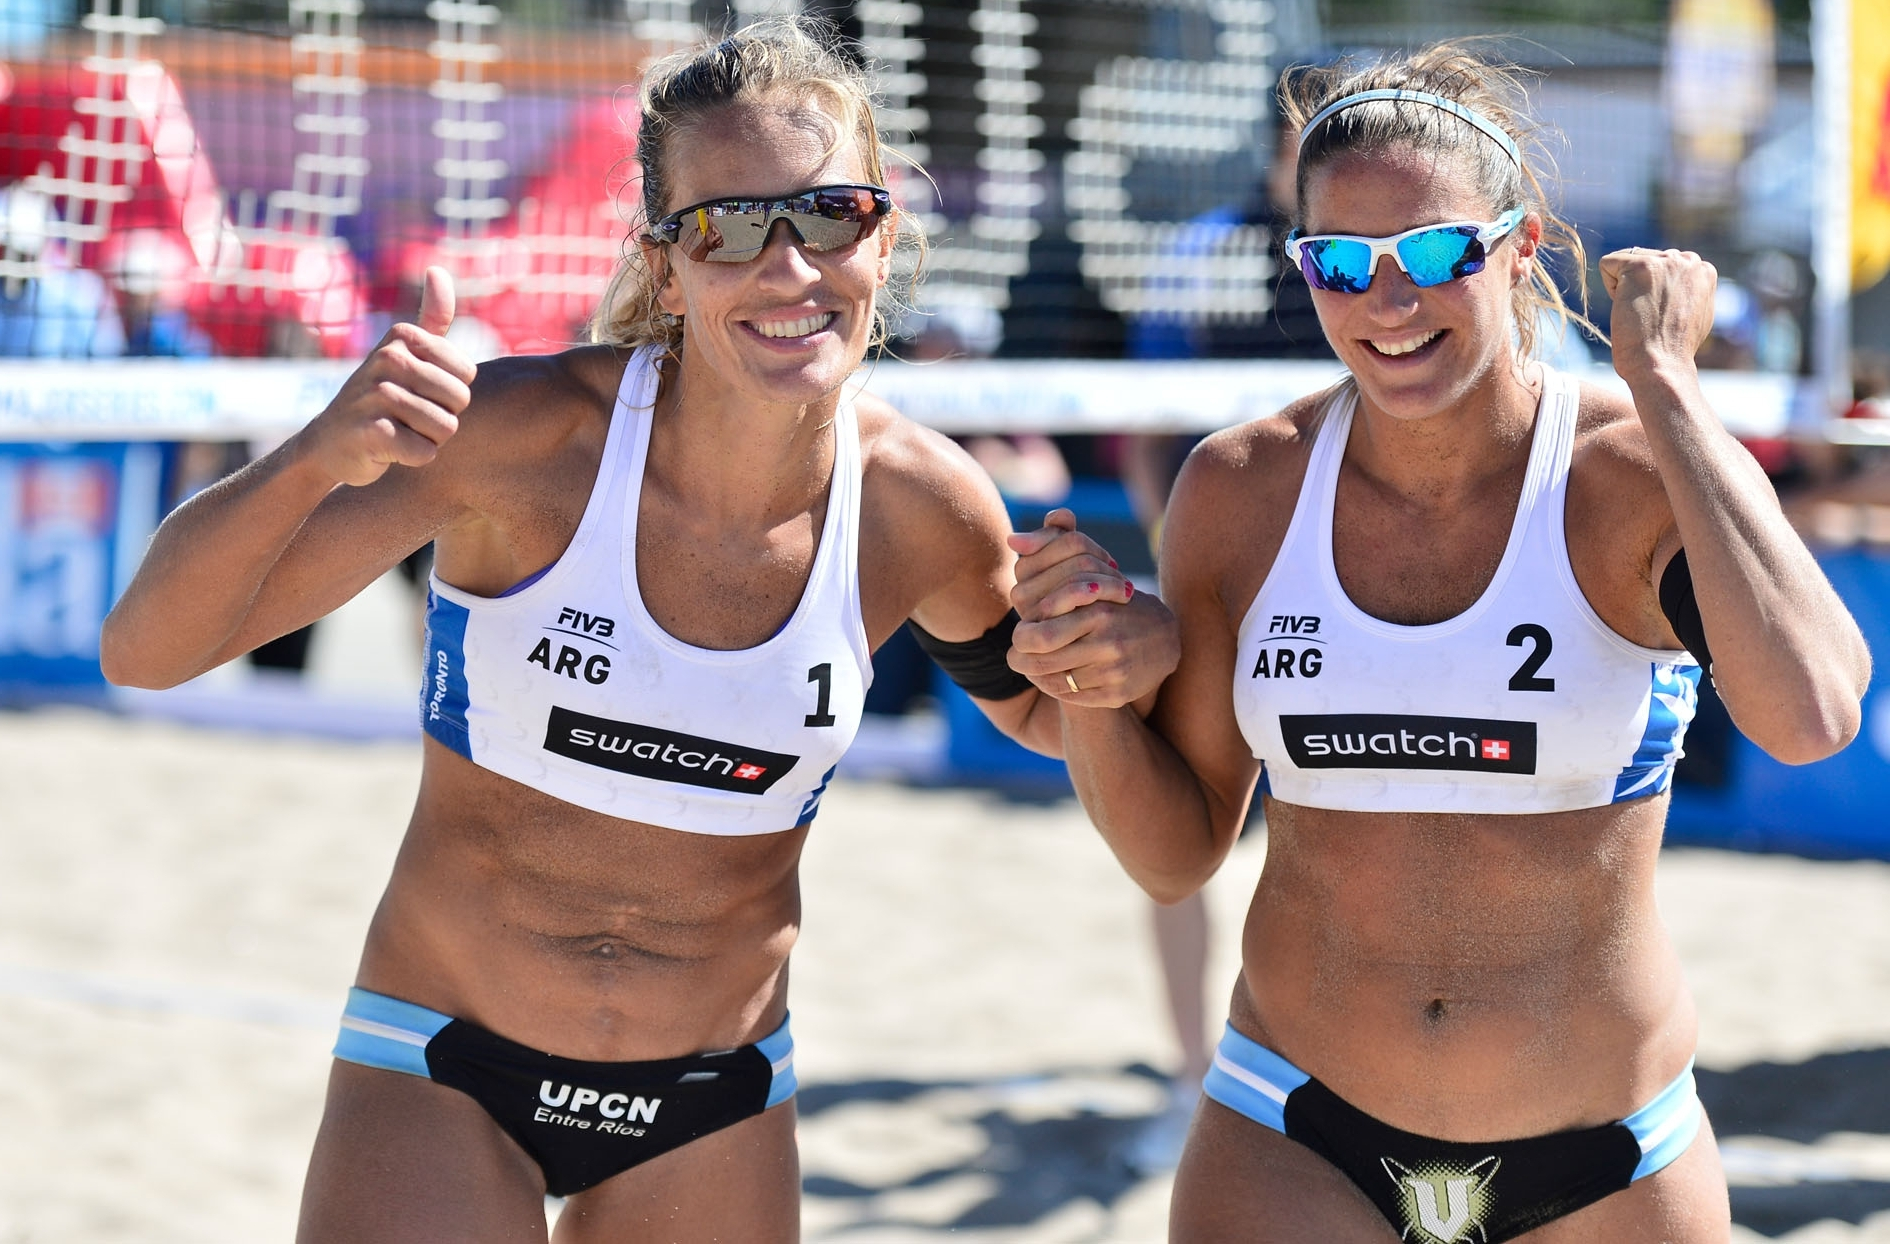 After losing yesterday to beating the Olympic champs! What a turnaround for Gallay/Klug. Photocredit: Bernhard Horst